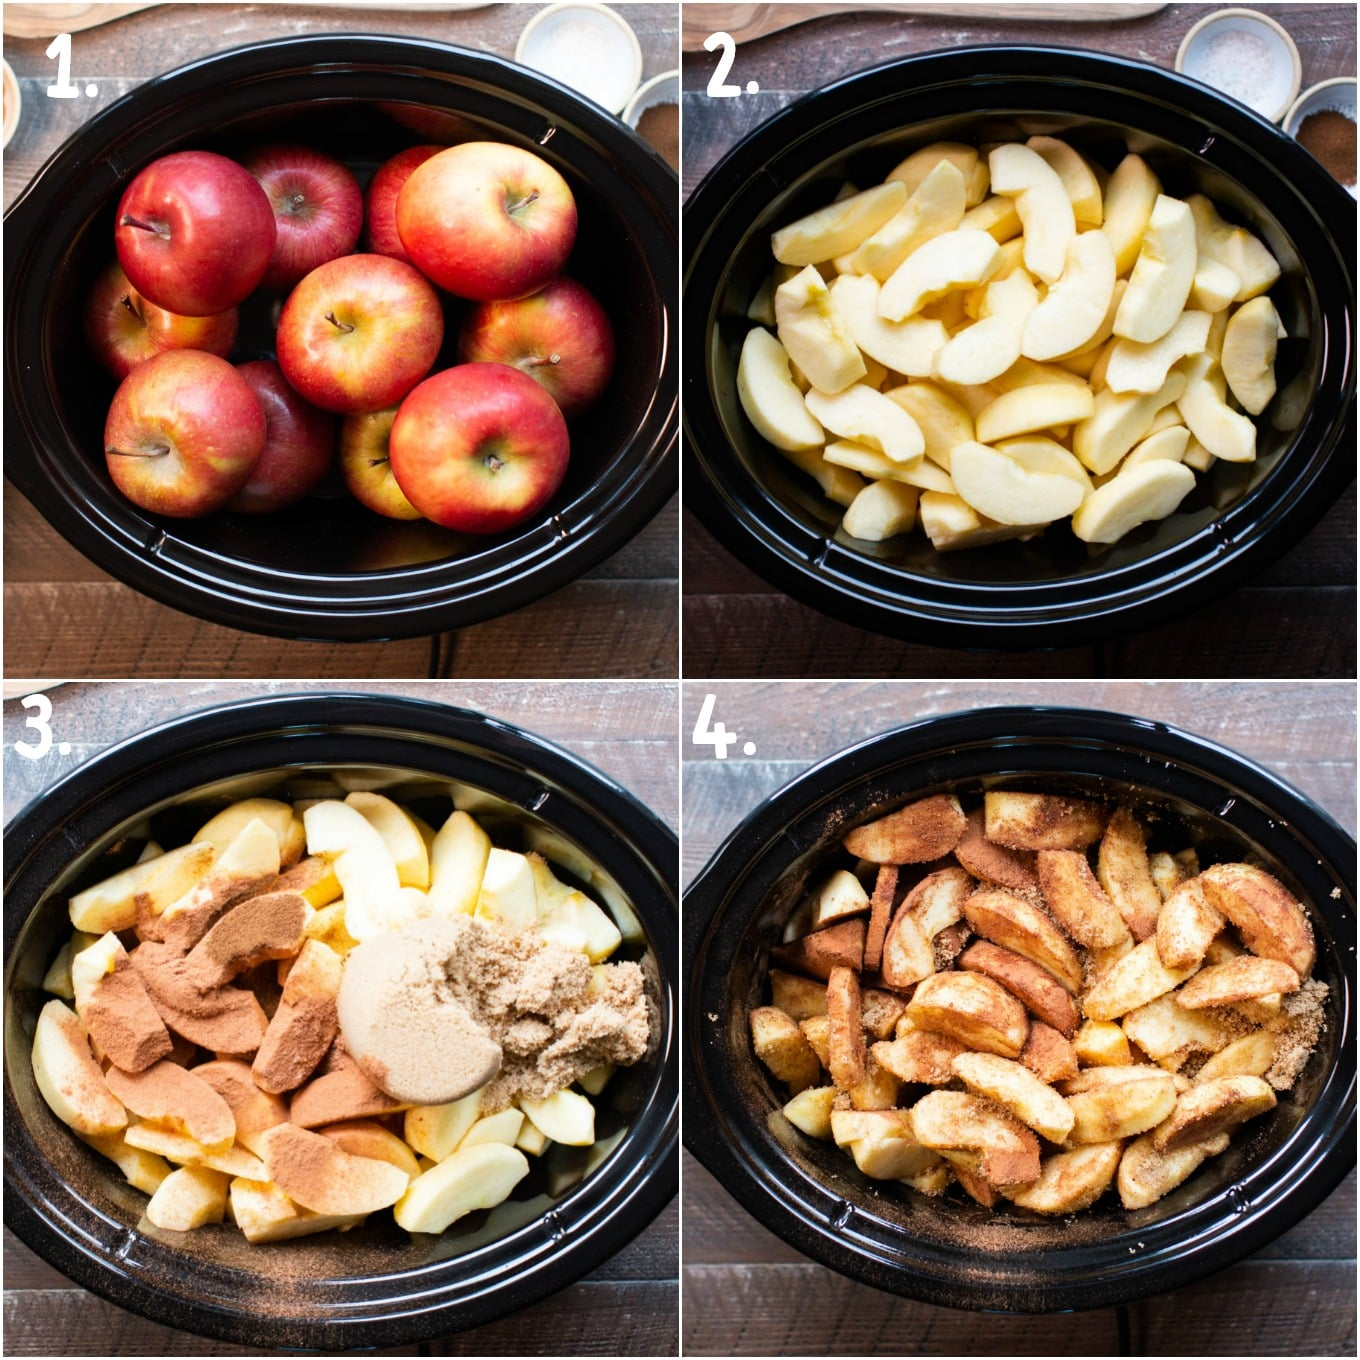 4 photo collage: Apples. Sliced and peeled apples. Apples with seasonings. Stirred apples.